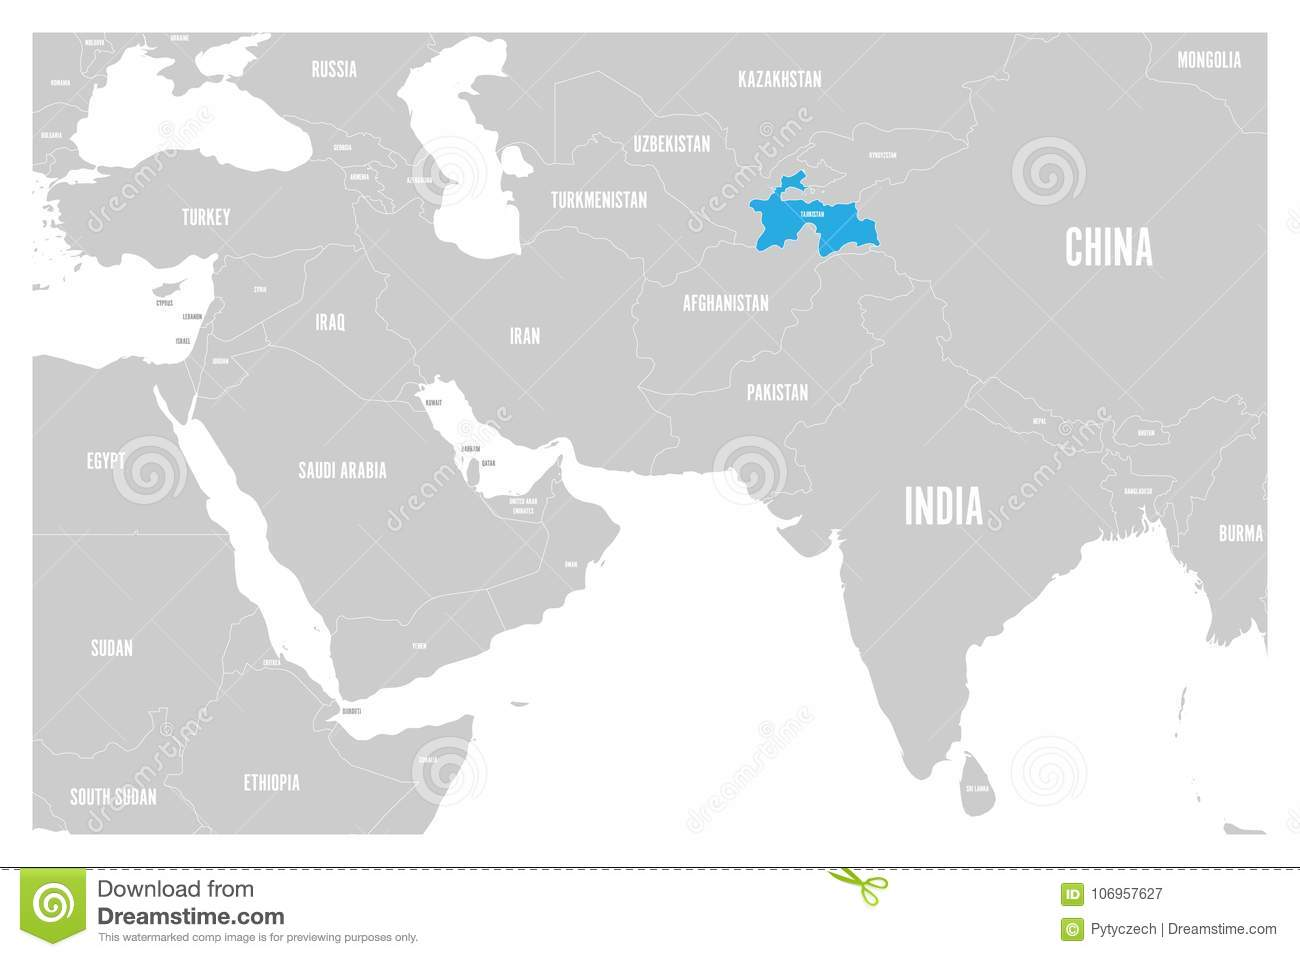 Tajikistan Blue Marked In Political Map Of South Asia And Middle ...